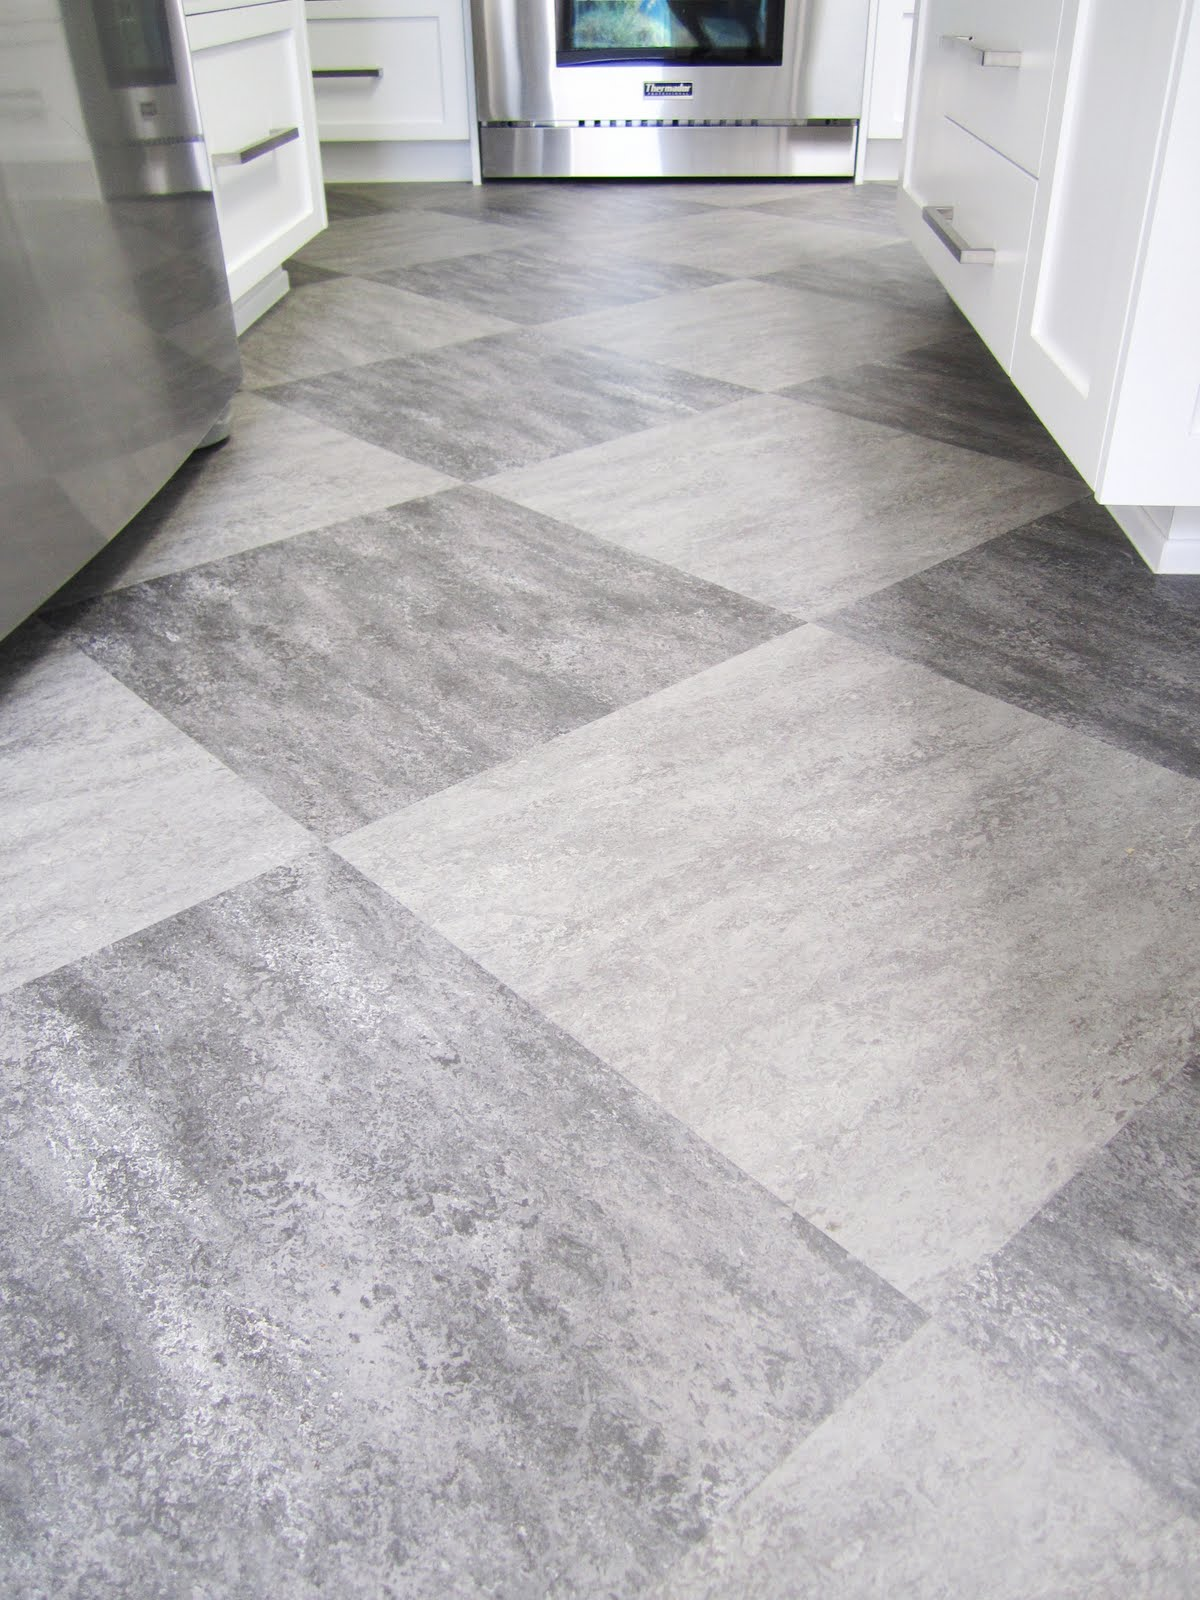 Kitchen Floor Tile Gray Cococozy Cococozy Q Anda Architect And Client Cook Up A